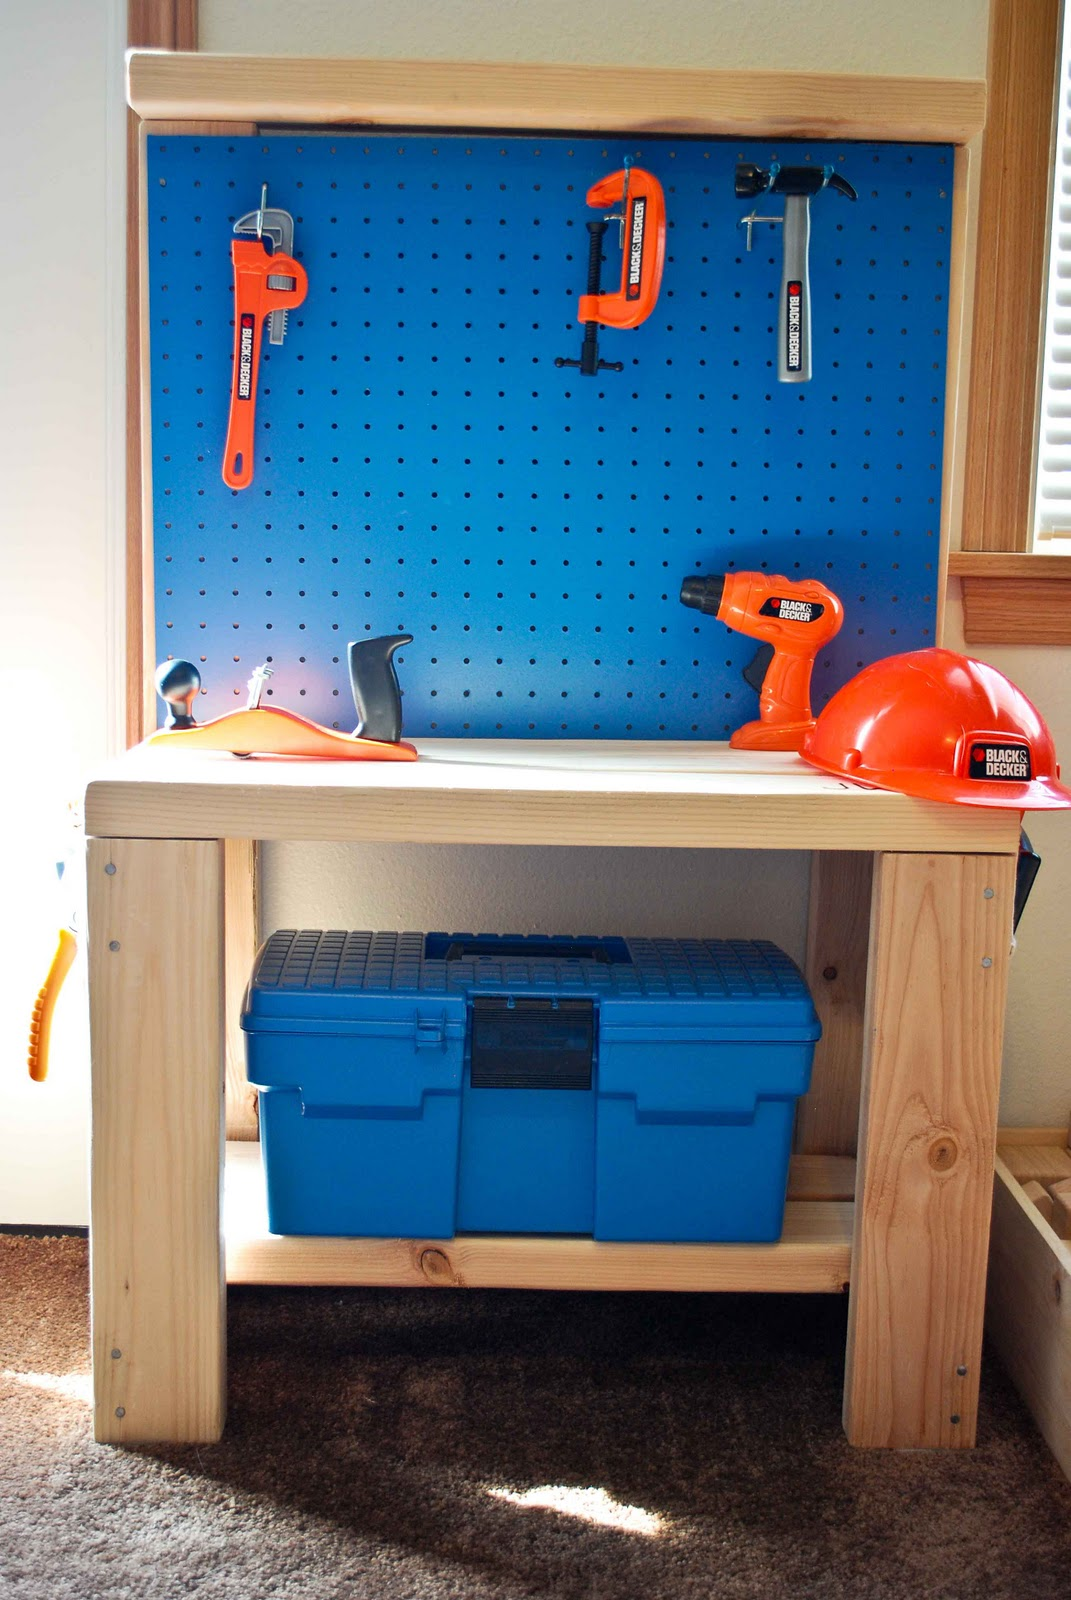 Woodwork diy kids workbench plans pdf download free diy for Diy home design software free